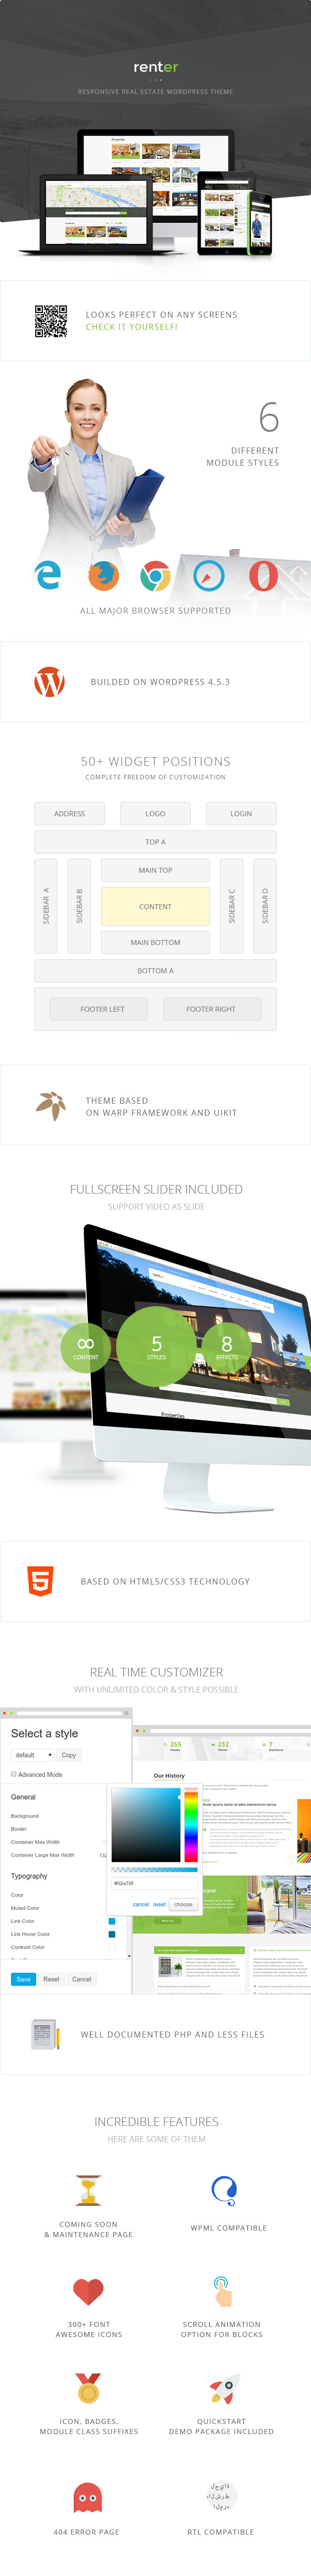 Renter — Property Rent/Sale Real Estate Agency & Realtor Responsive WordPress Theme - 3